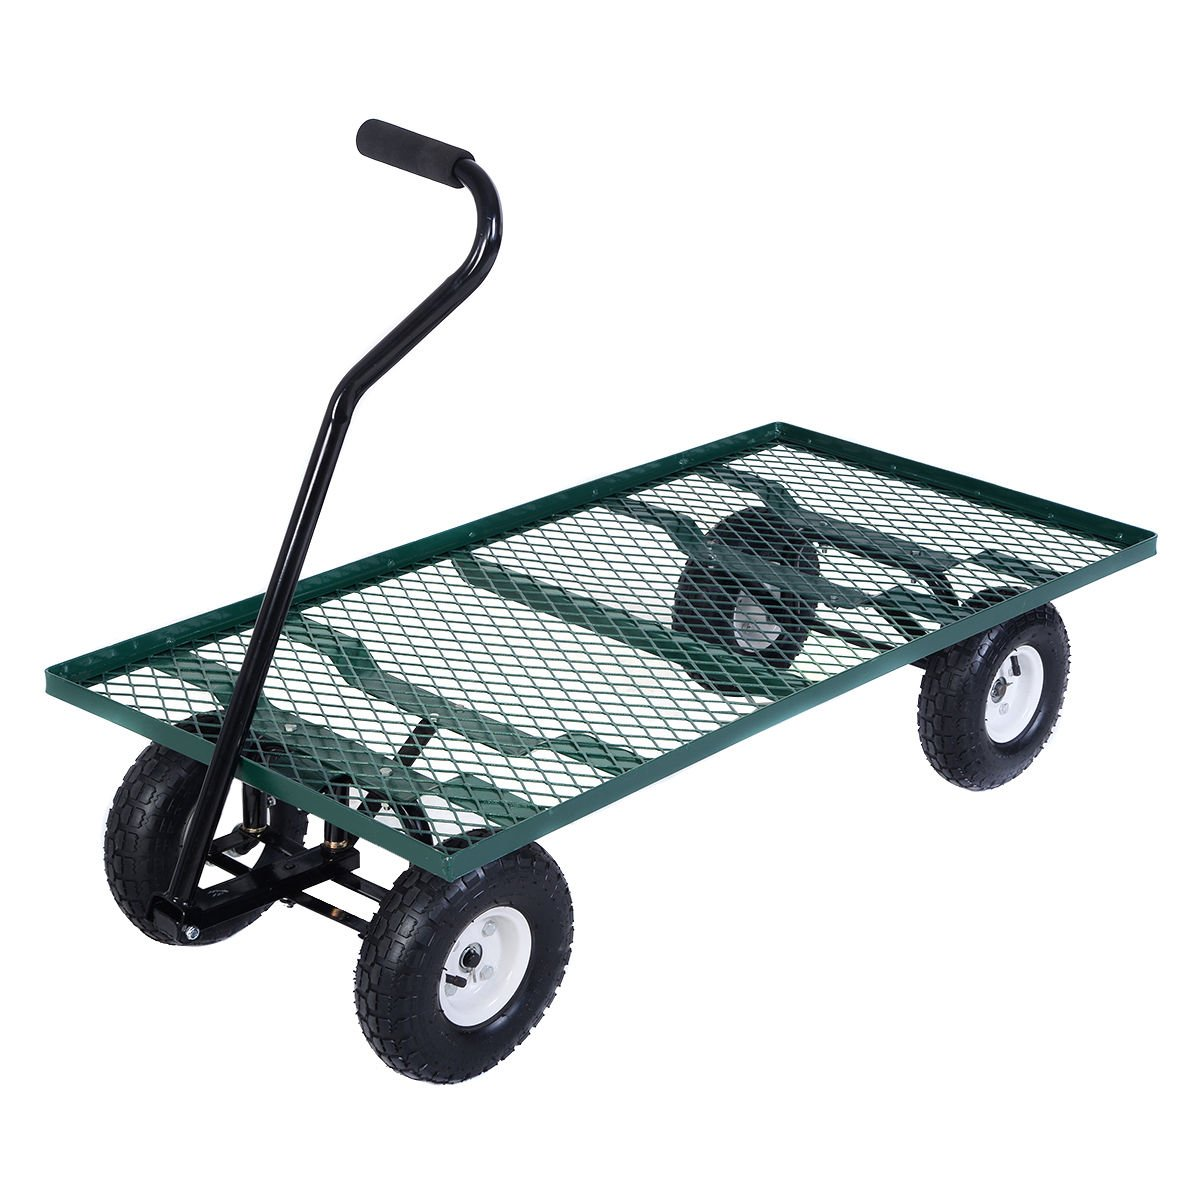 Merveilleux Amazon.com : Wagon Garden Cart Nursery Steel Mesh Deck Trailer Heavy Duty  Cart Yard Gardening Useful Product : Garden U0026 Outdoor